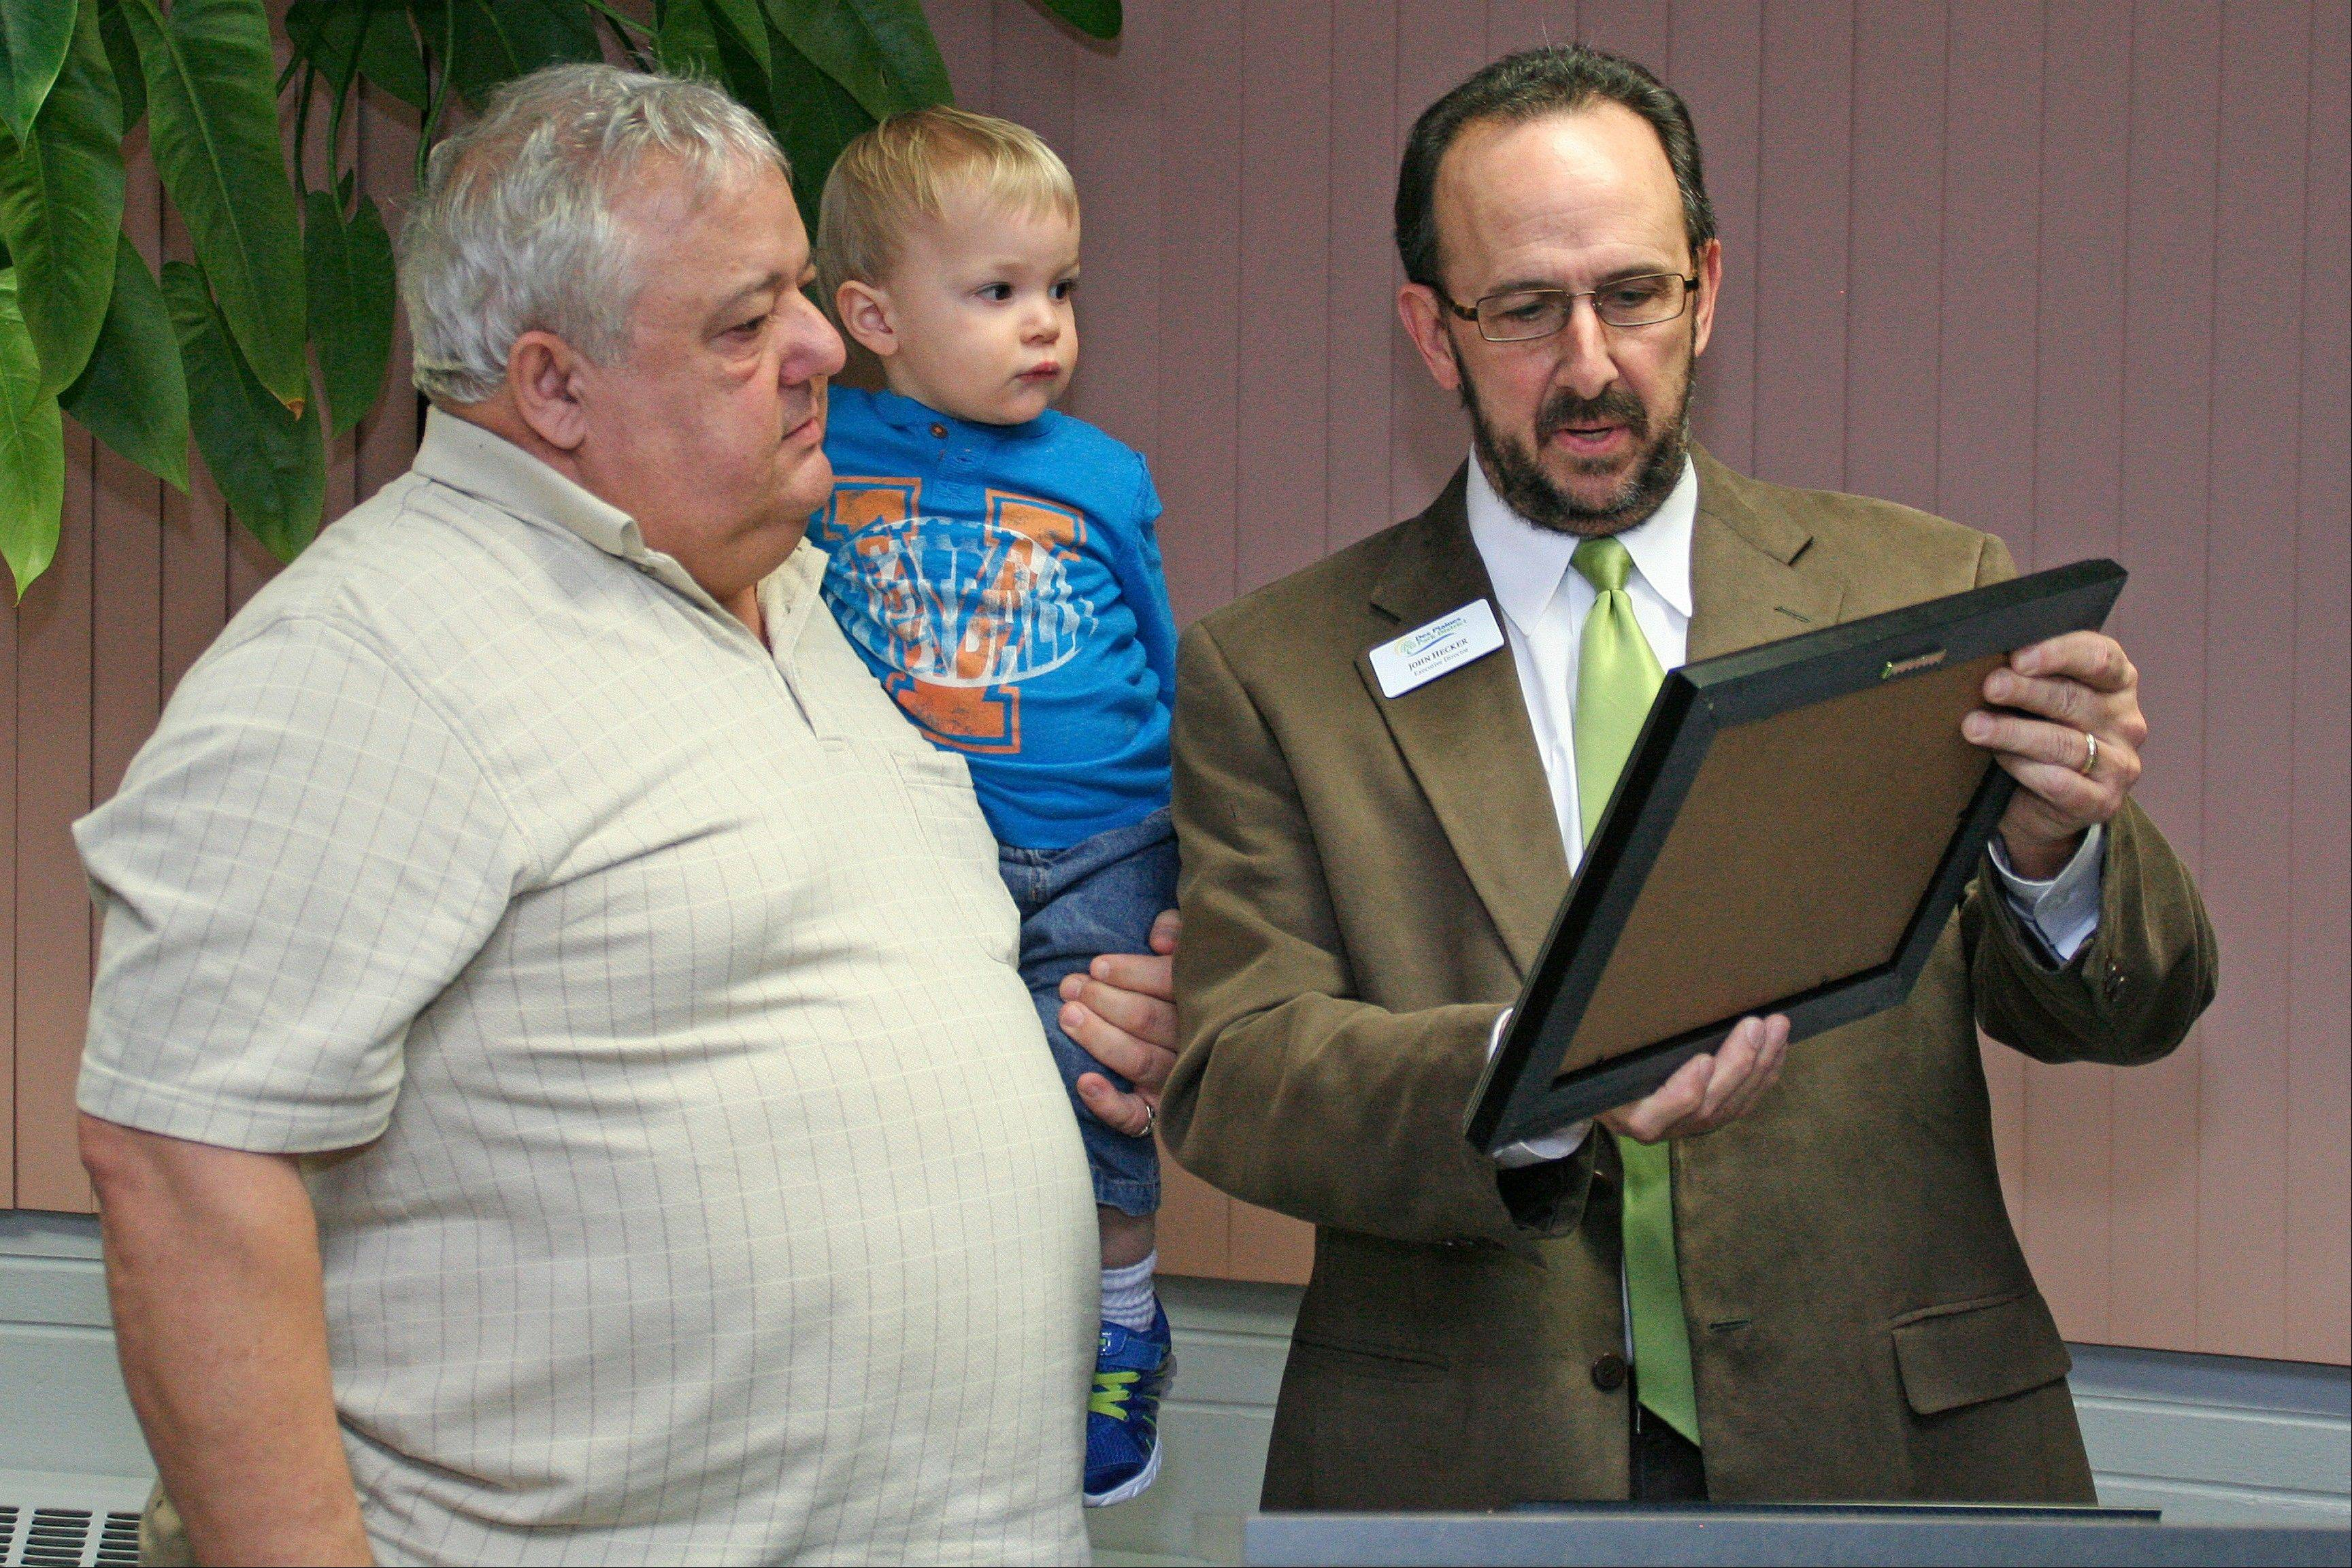 Commissioner Donald J. Rosedale, holding his grandson, John Skibbe, receives the Community Service Honor Roll Award from Des Plaines Park District Executive Director John Hecker.